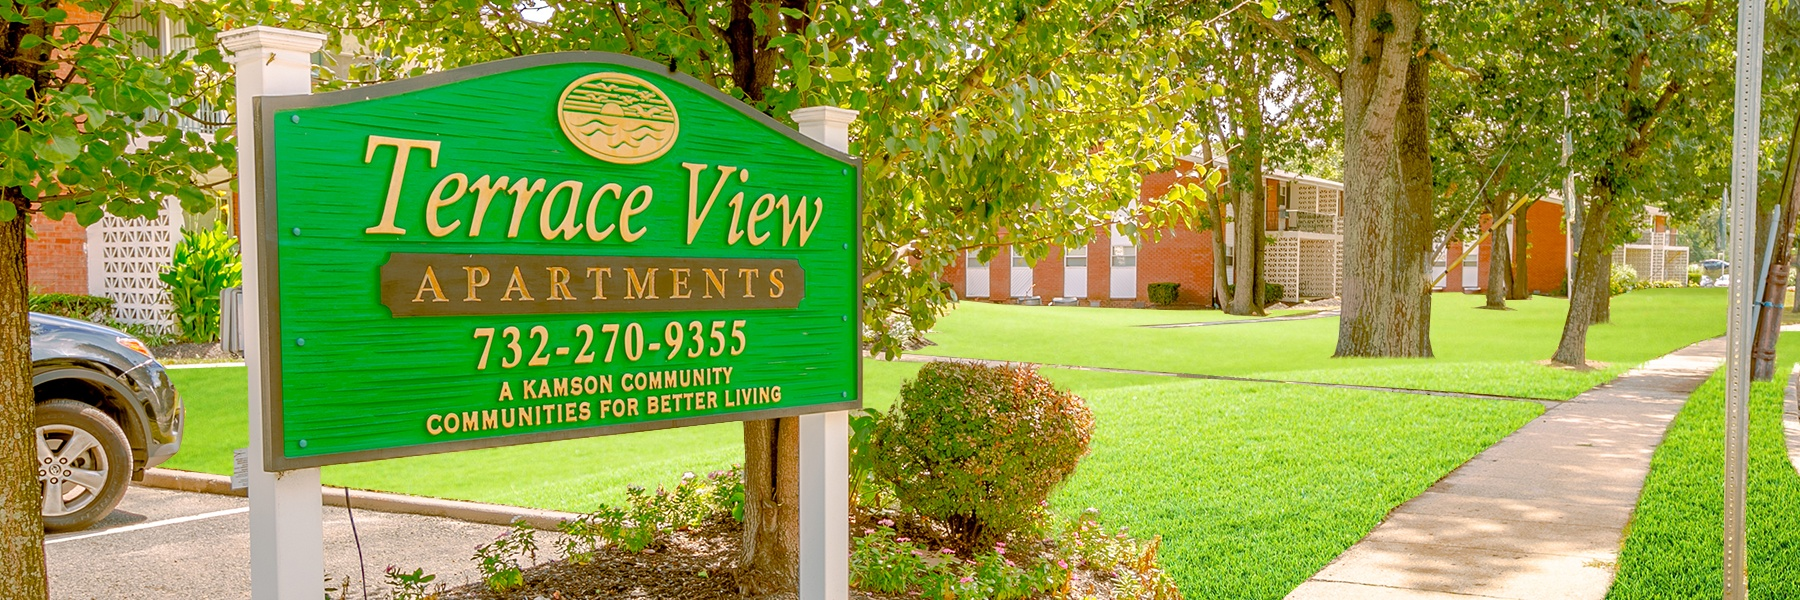 Terrace View Apartments For Rent in Toms River, NJ Welcome to our property!